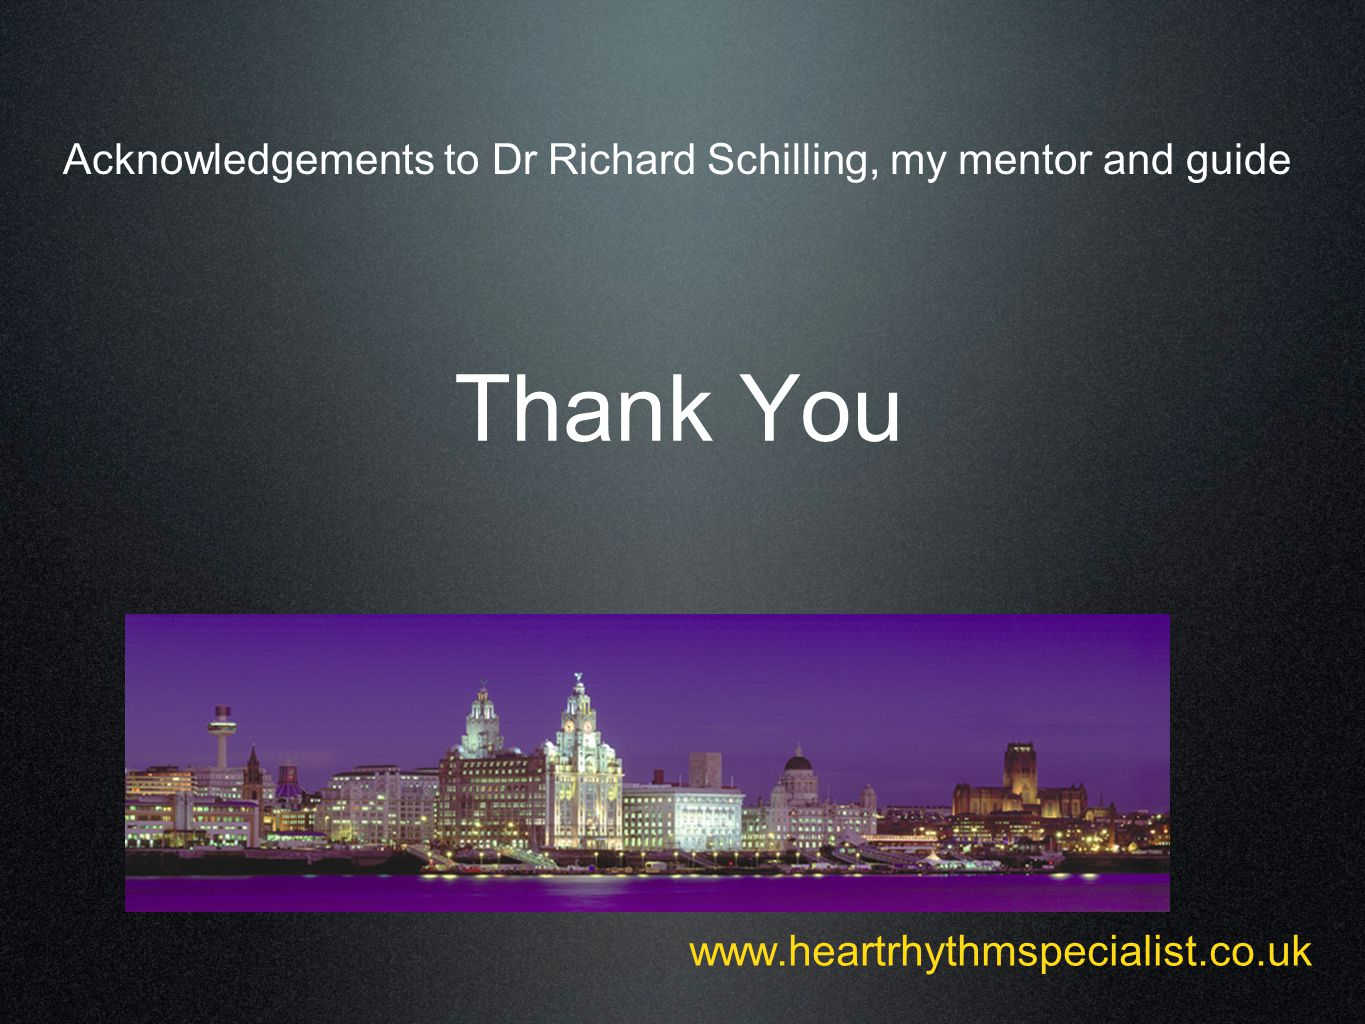 www.heartrhythmspecialist.co.uk Thank You Acknowledgements to Dr Richard Schilling, my mentor and guide